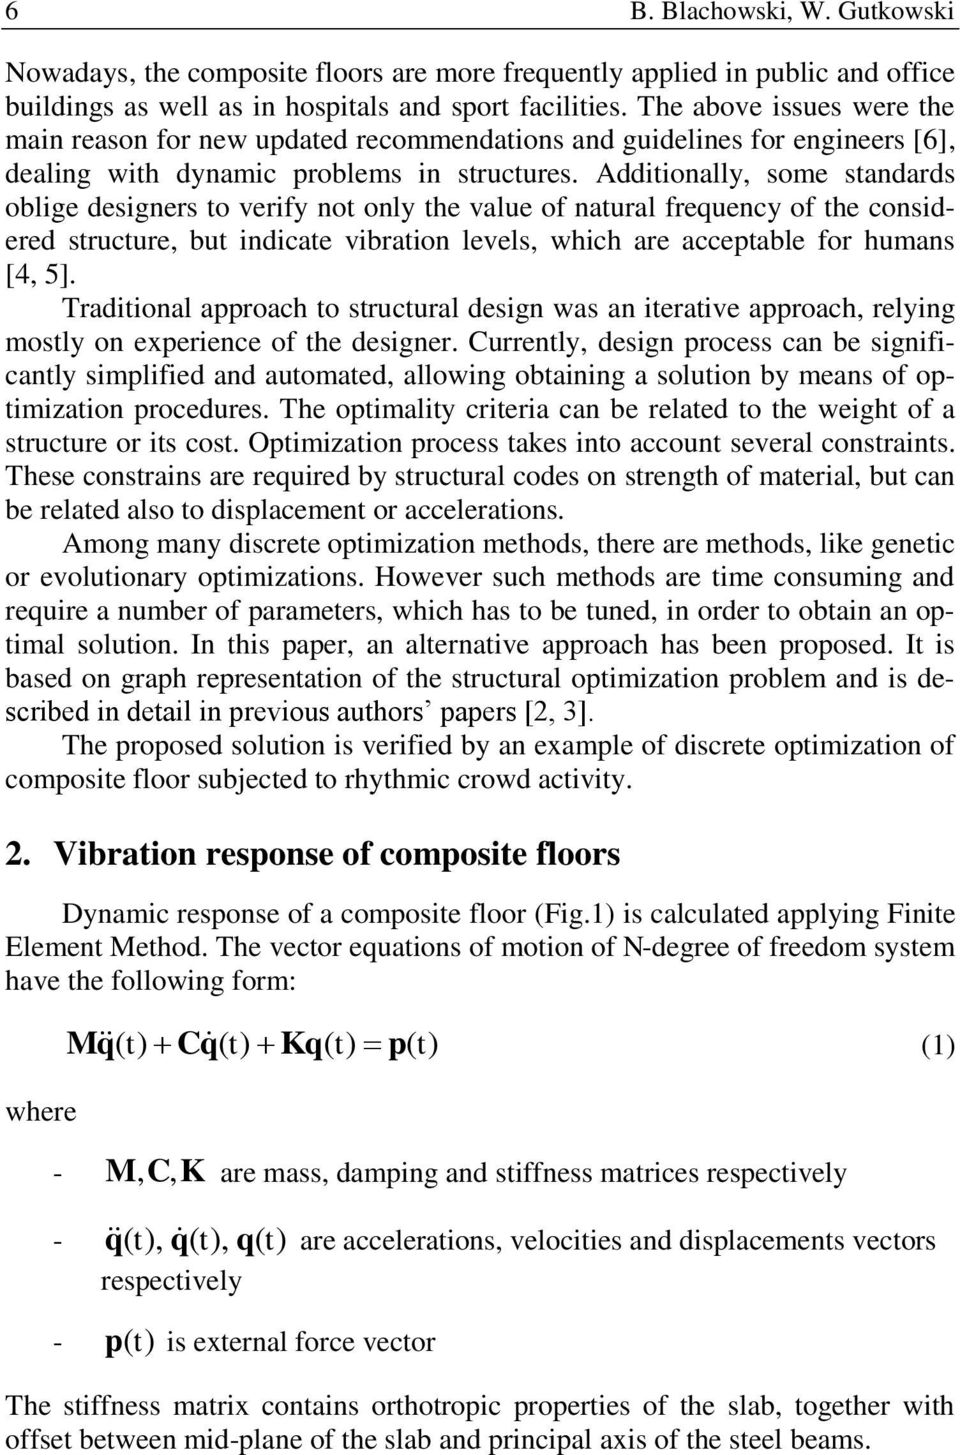 Additionally, some standards oblige designers to verify not only the value of natural frequency of the considered structure, but indicate vibration levels, which are acceptable for humans [4, 5].